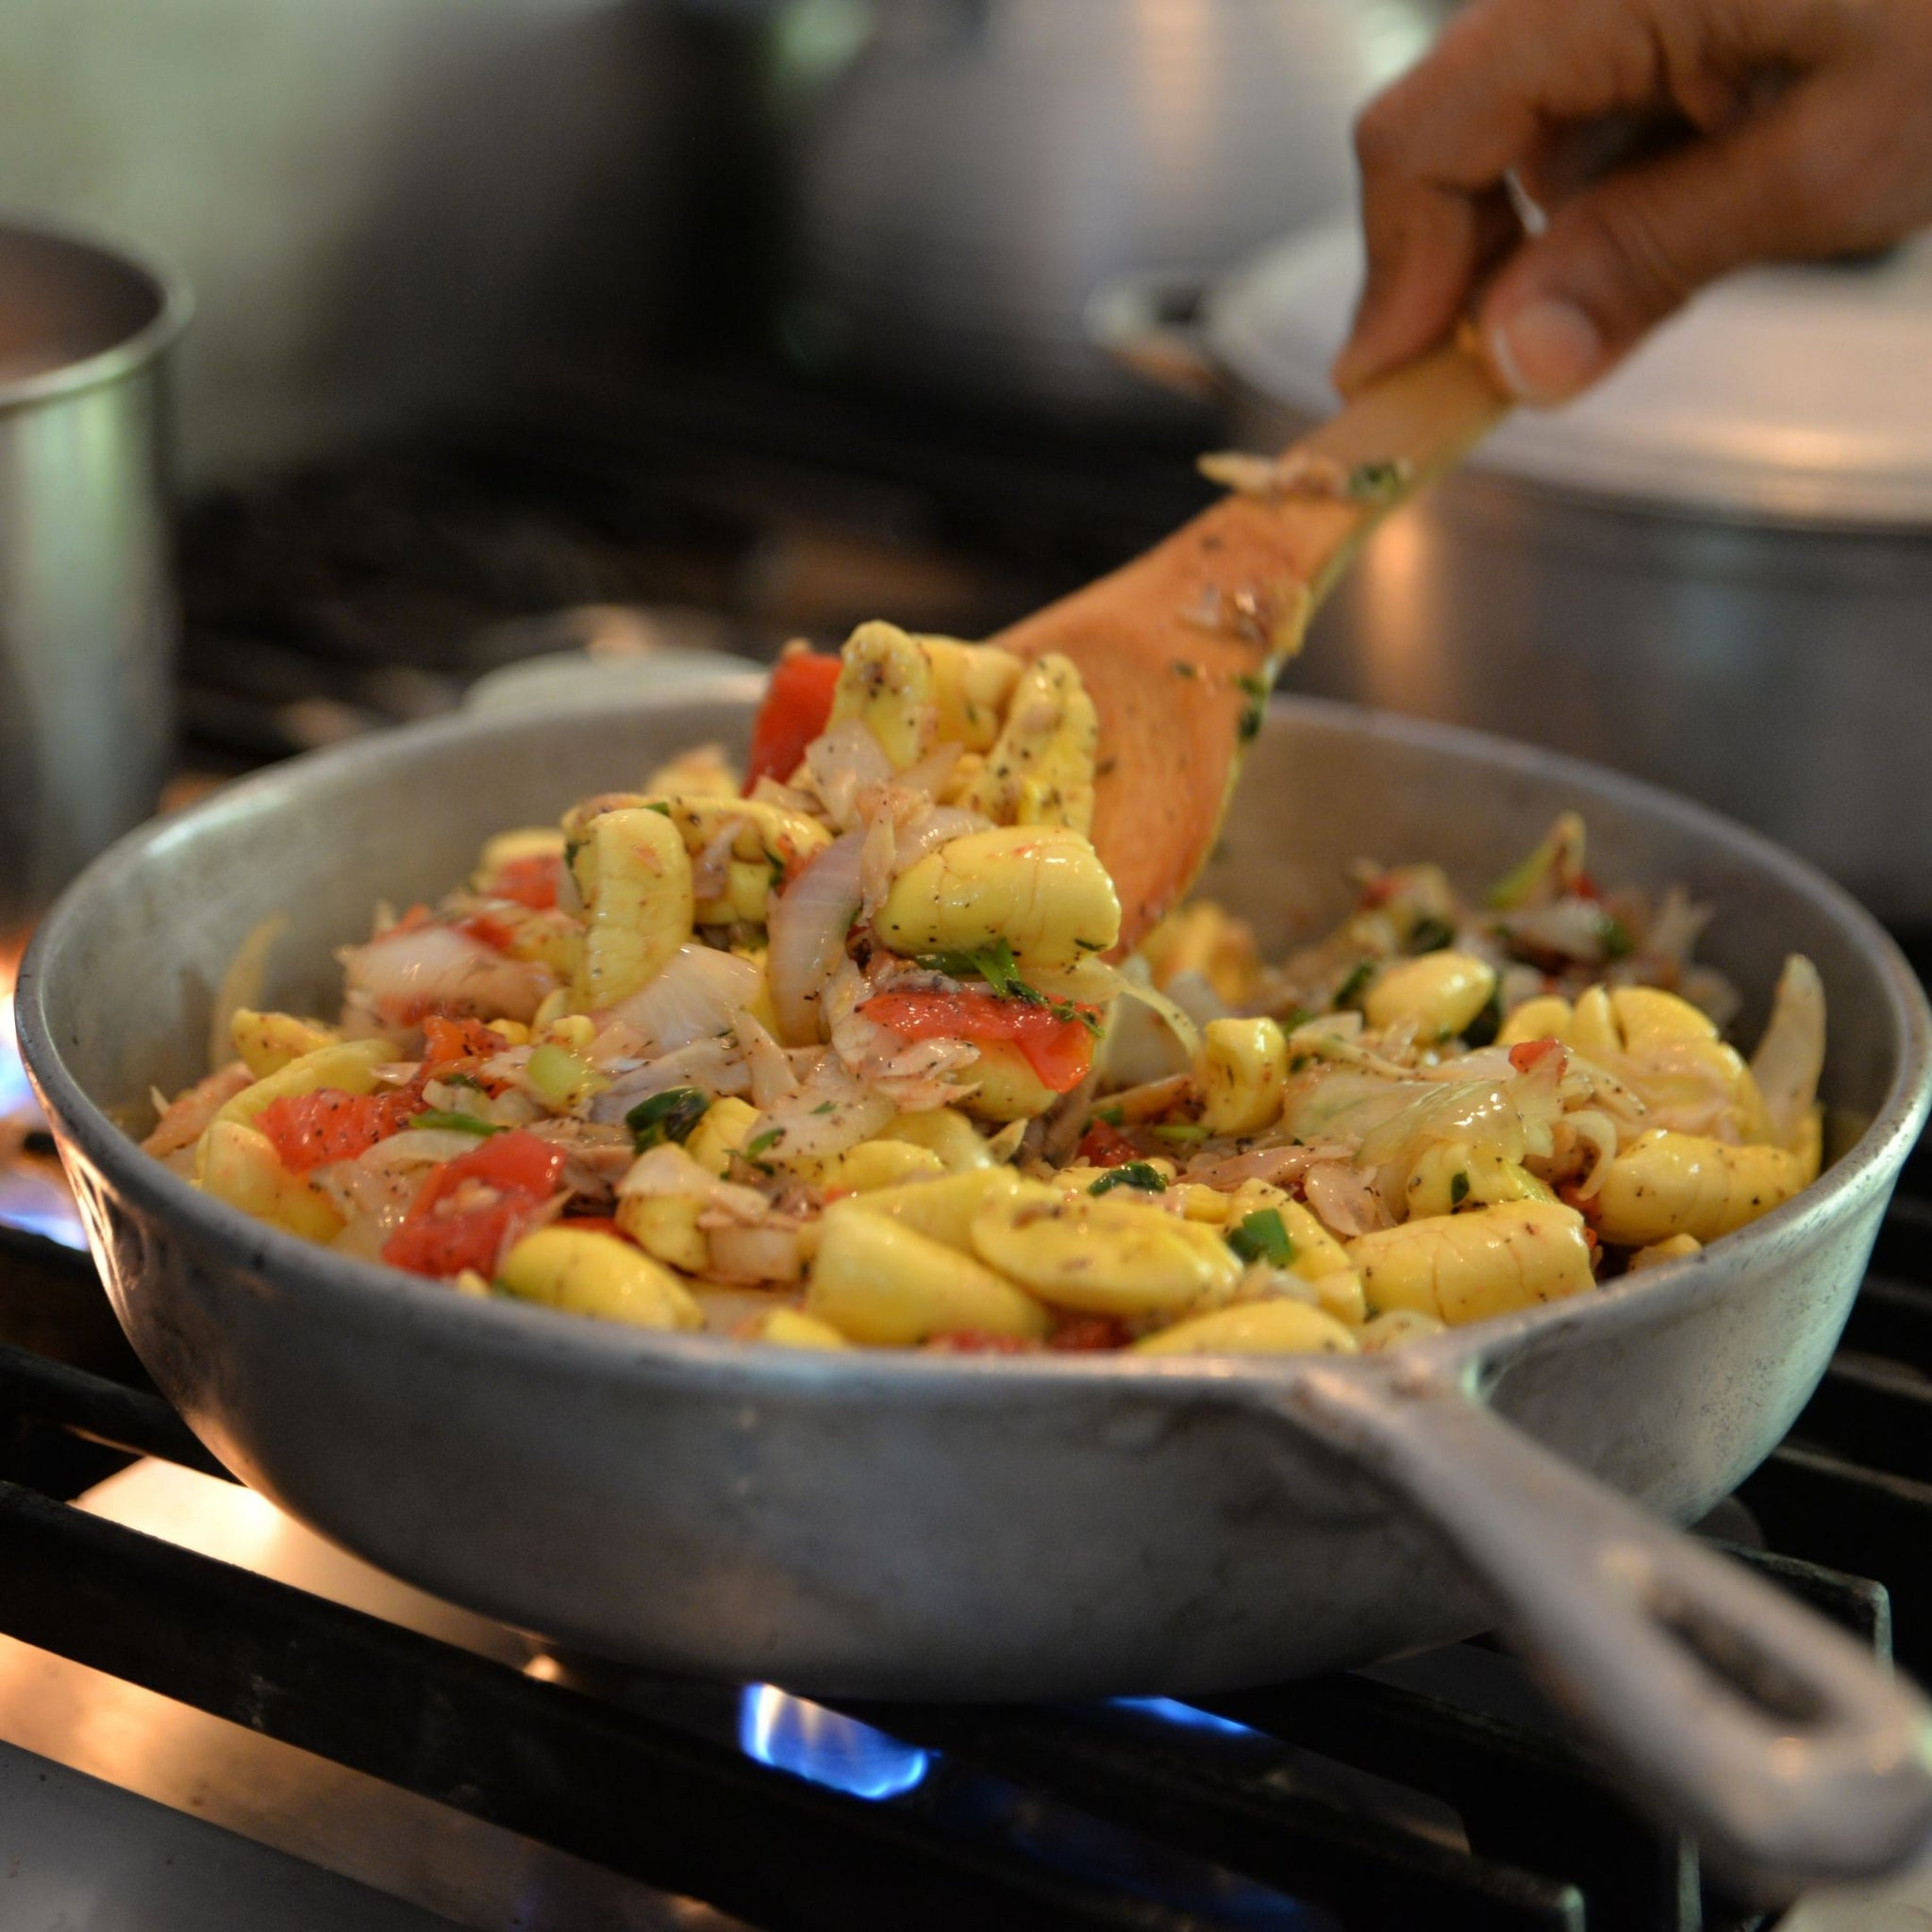 ackee and saltfish meal - caribbean meal